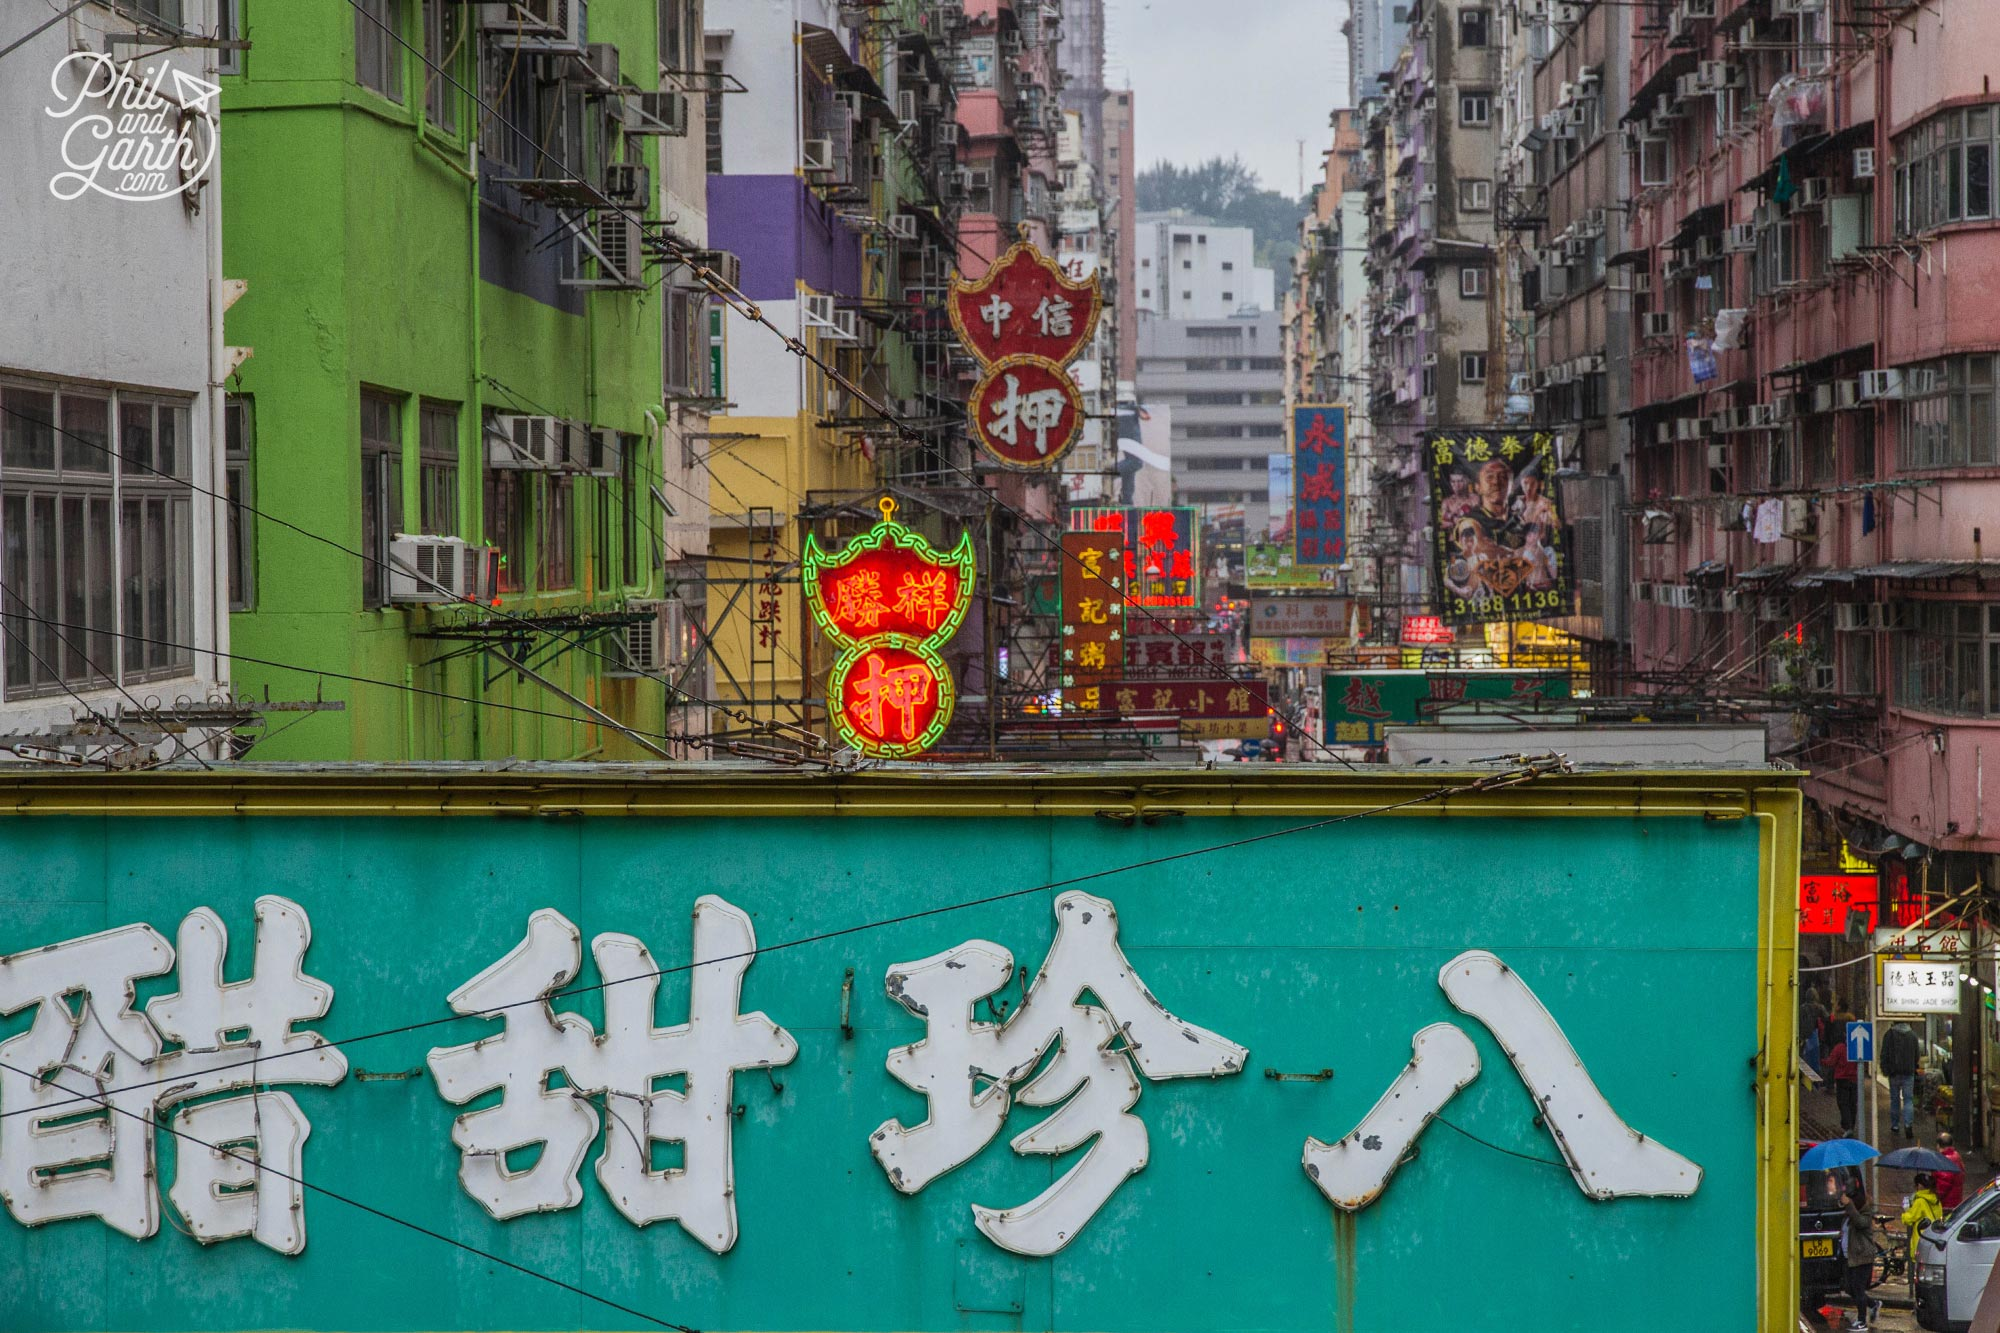 Hundreds of neon signs and lights line the streets of Kowloon